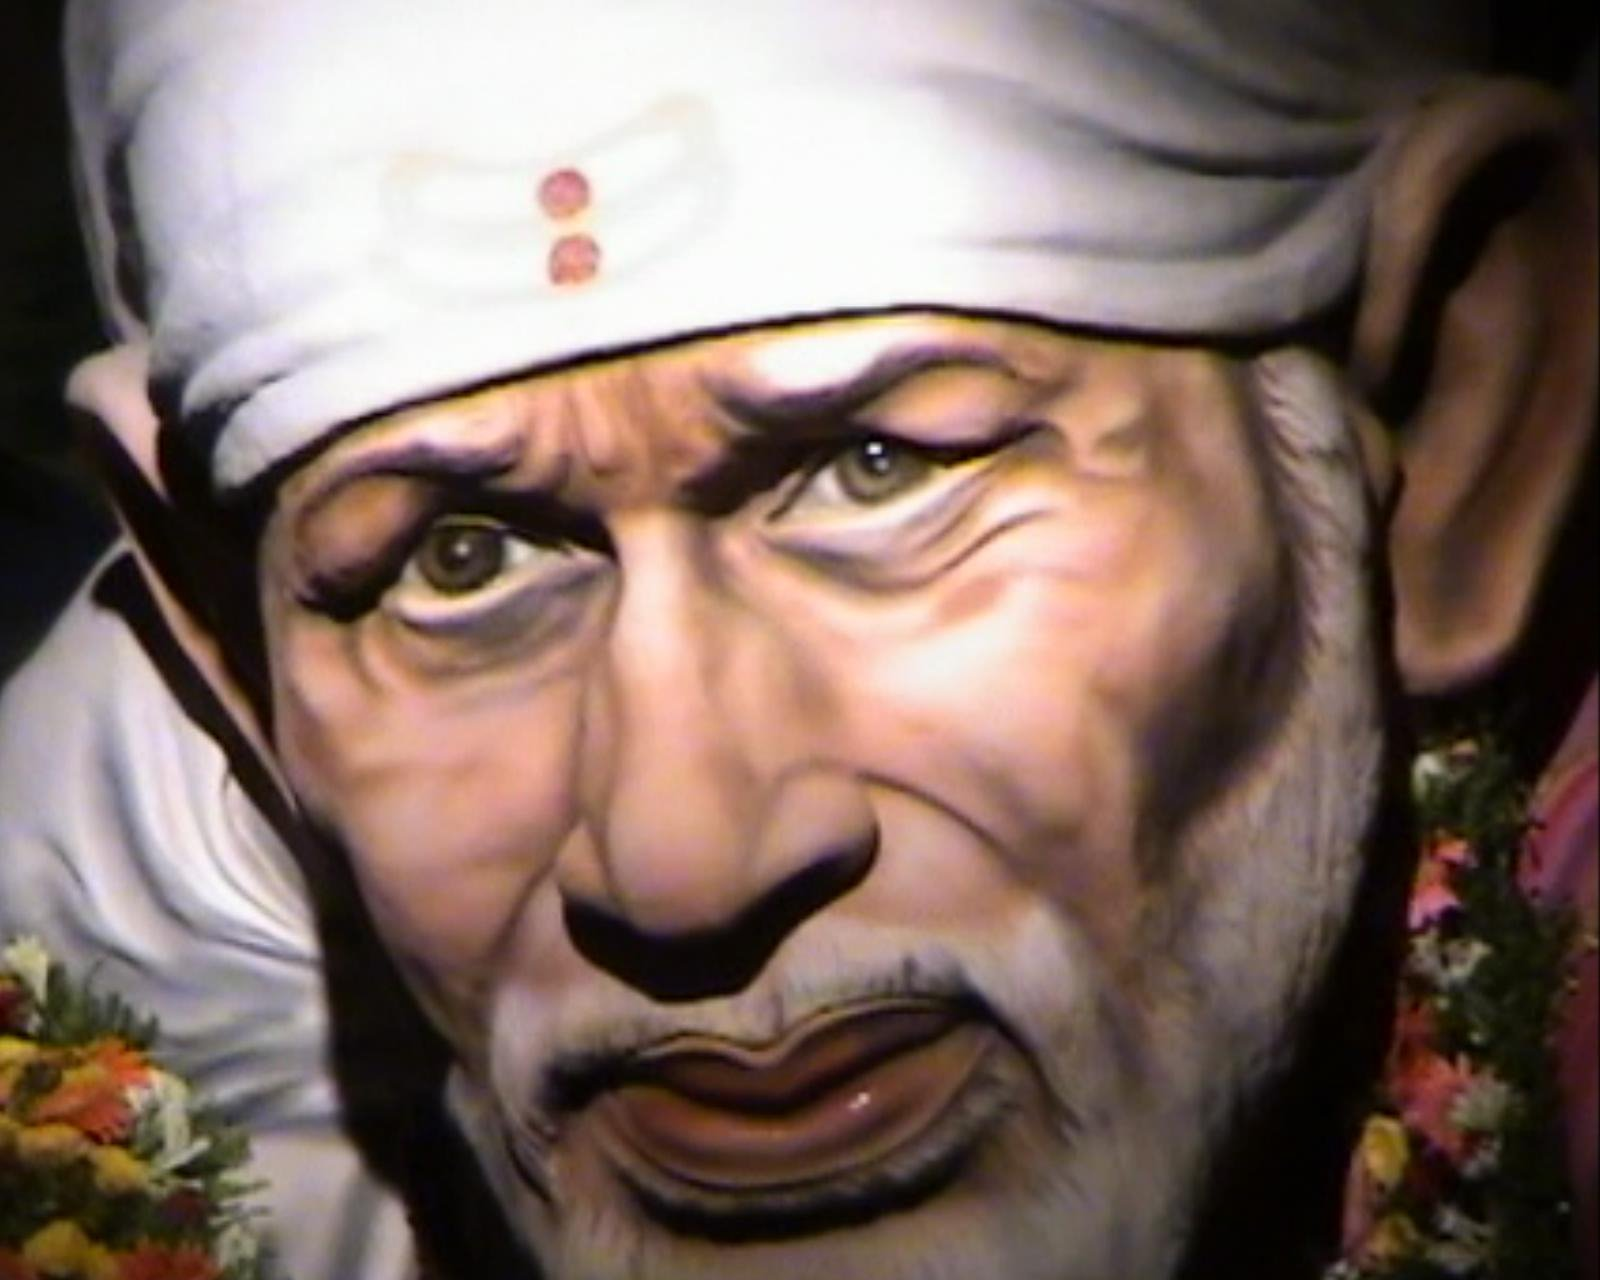 Sai baba hd wallpapers | Sai Baba Wallpaper Full Hd 1080p